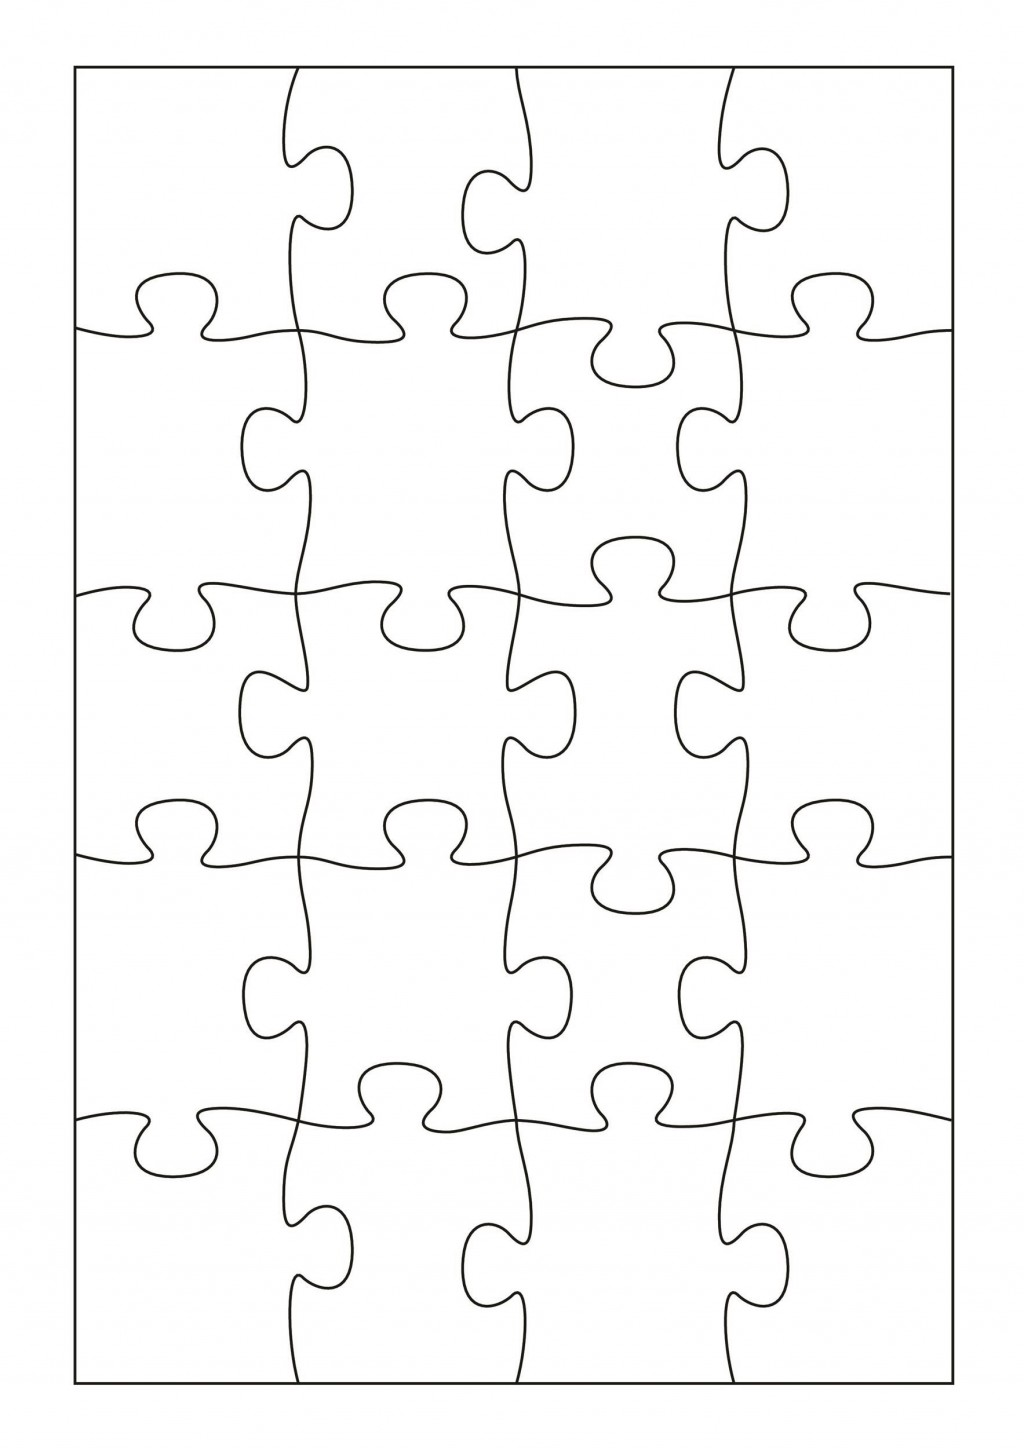 009 Phenomenal Jig Saw Puzzle Template Highest Quality  Printable Blank Jigsaw Vector Free PngLarge